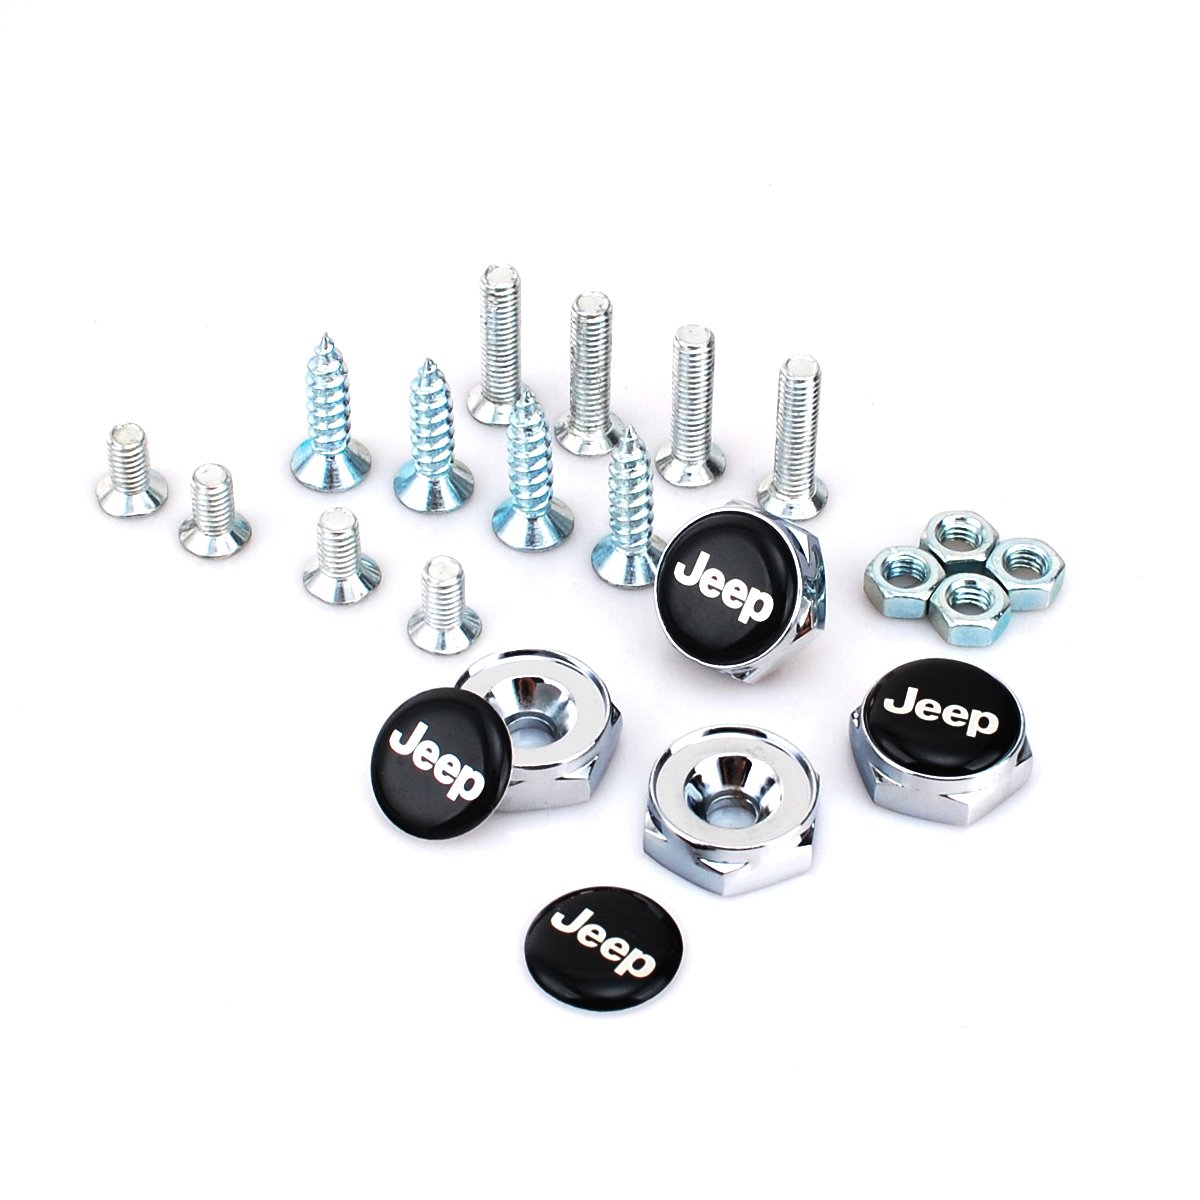 AEMULUS Combo Set Silver Tire Valve Stem Air Caps Cover and Keychain Tire Decoration For Car Auto SSR